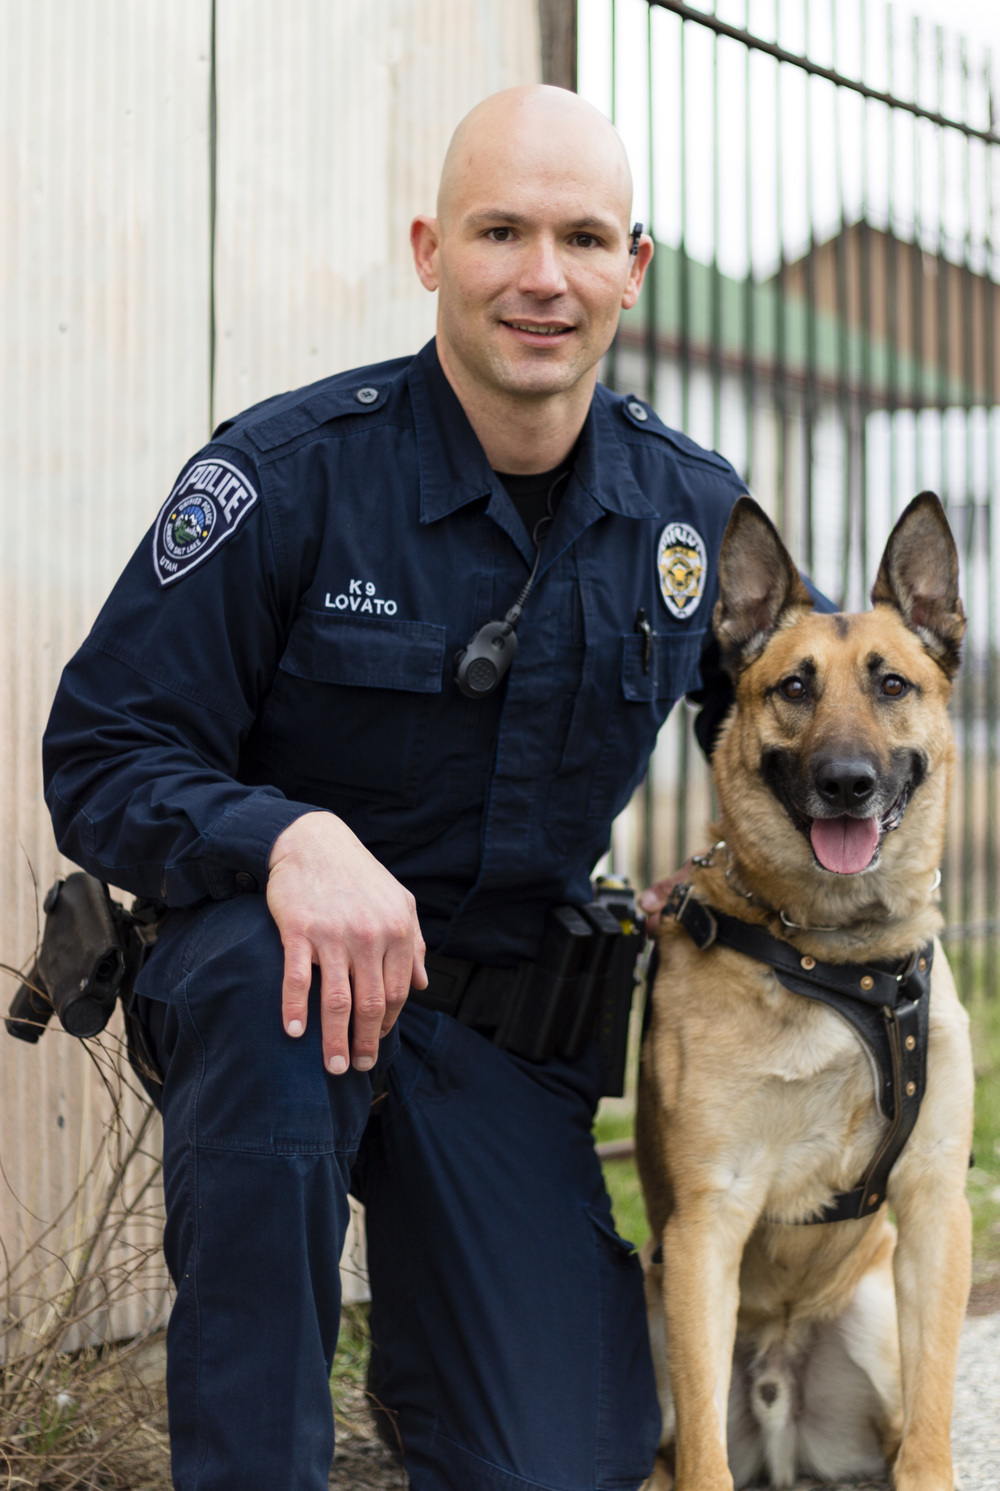 K9 Aldo | Unified Police Department of Greater Salt Lake, Utah